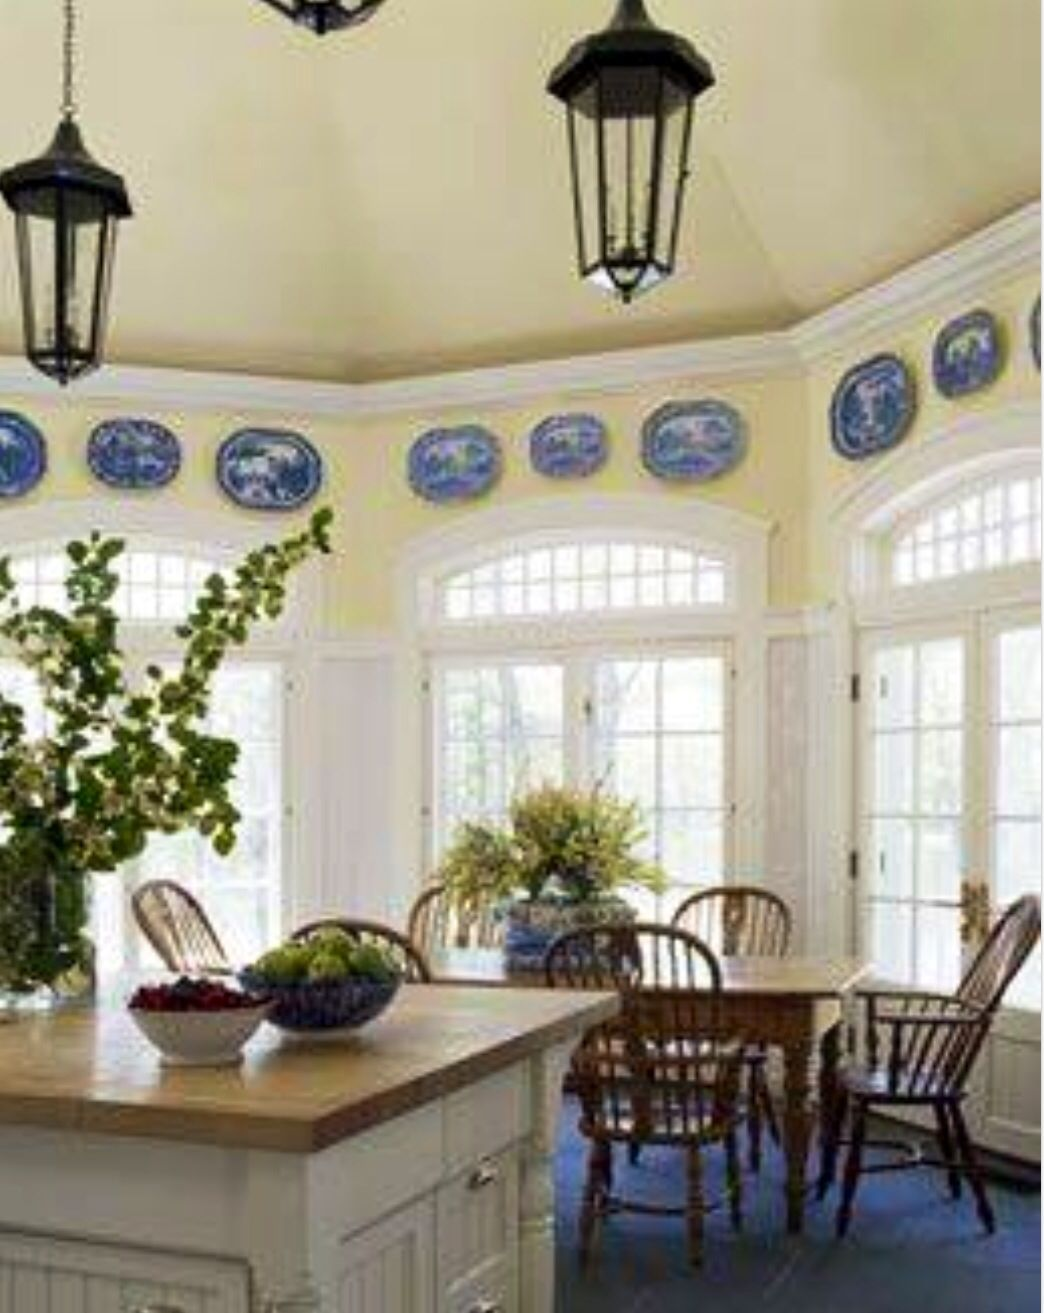 Blue and white ideas for the house pinterest for Decoraciones para casas